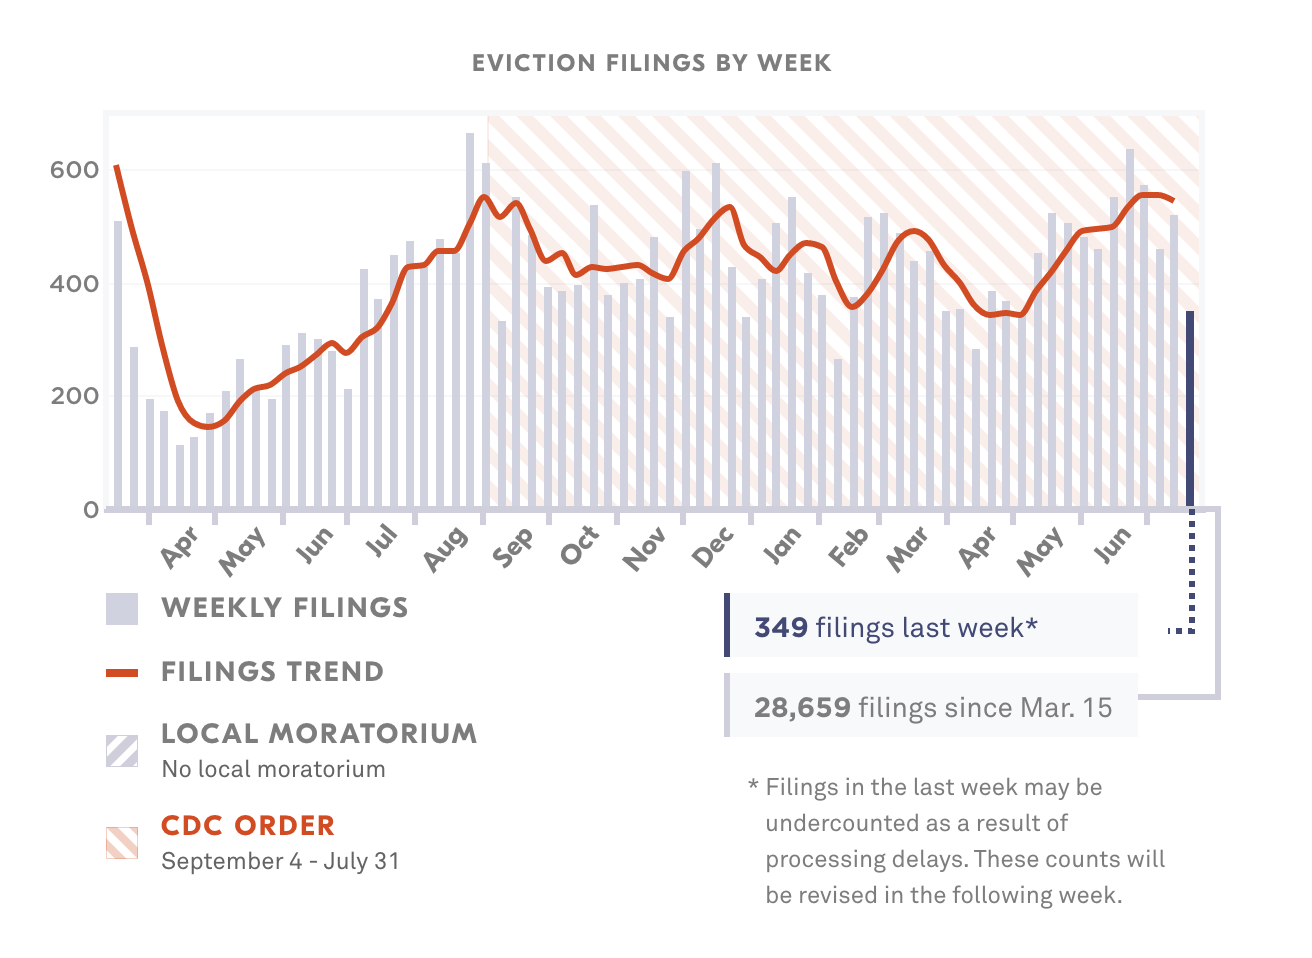 Graphic showing eviction filings by week.